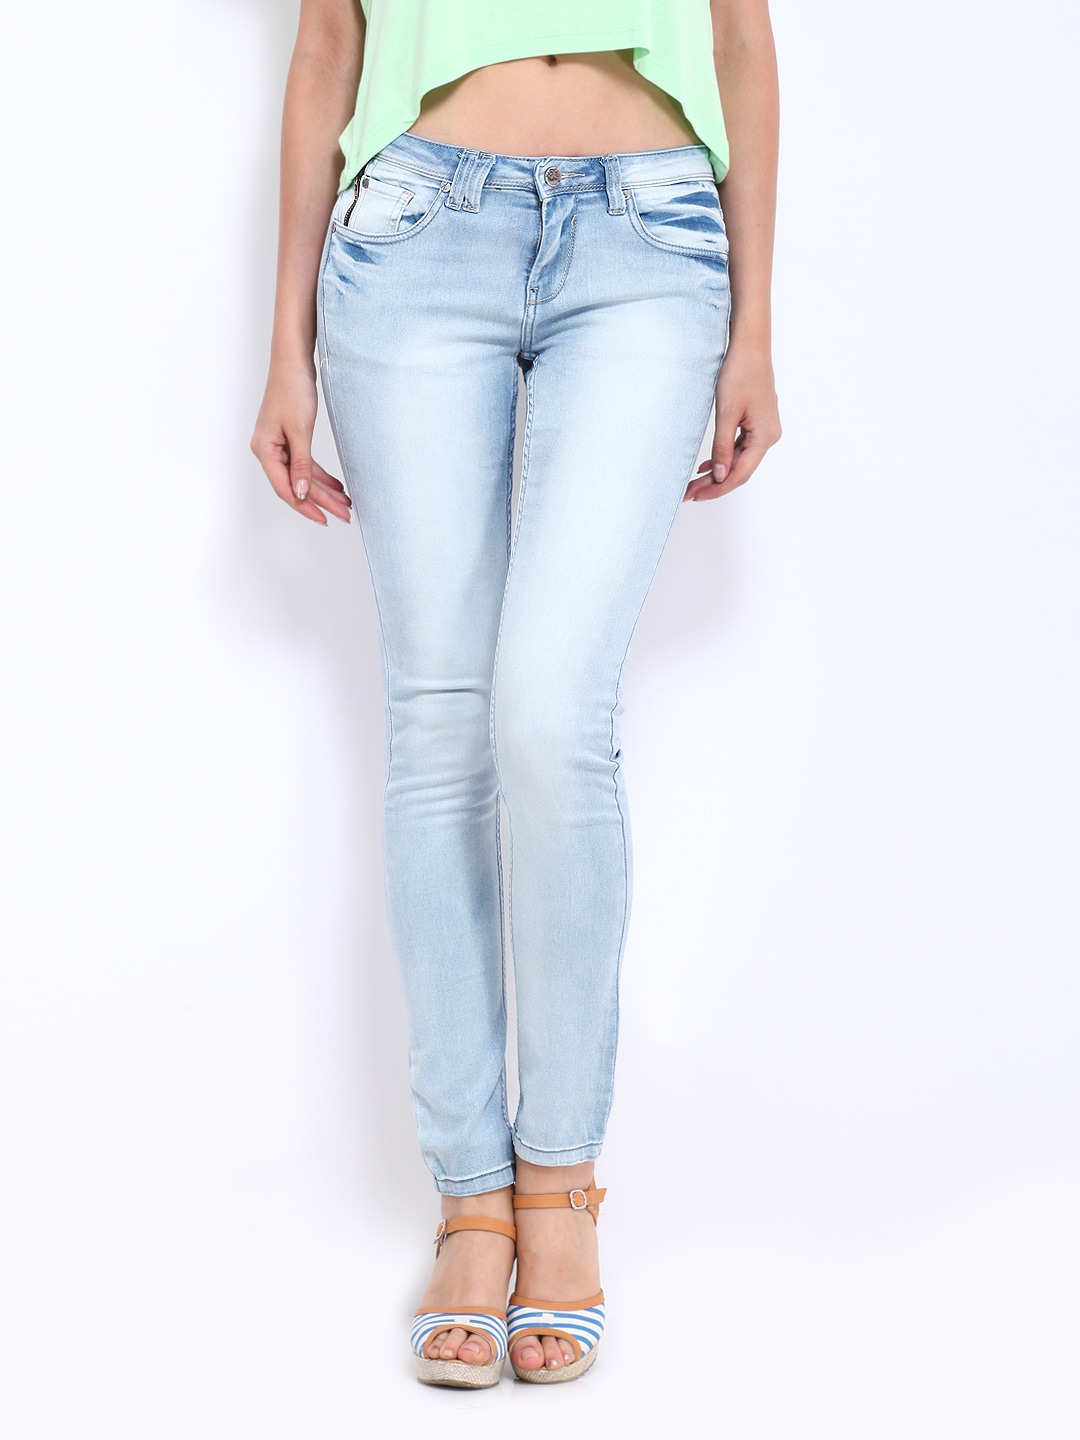 Buy Jeans For Women